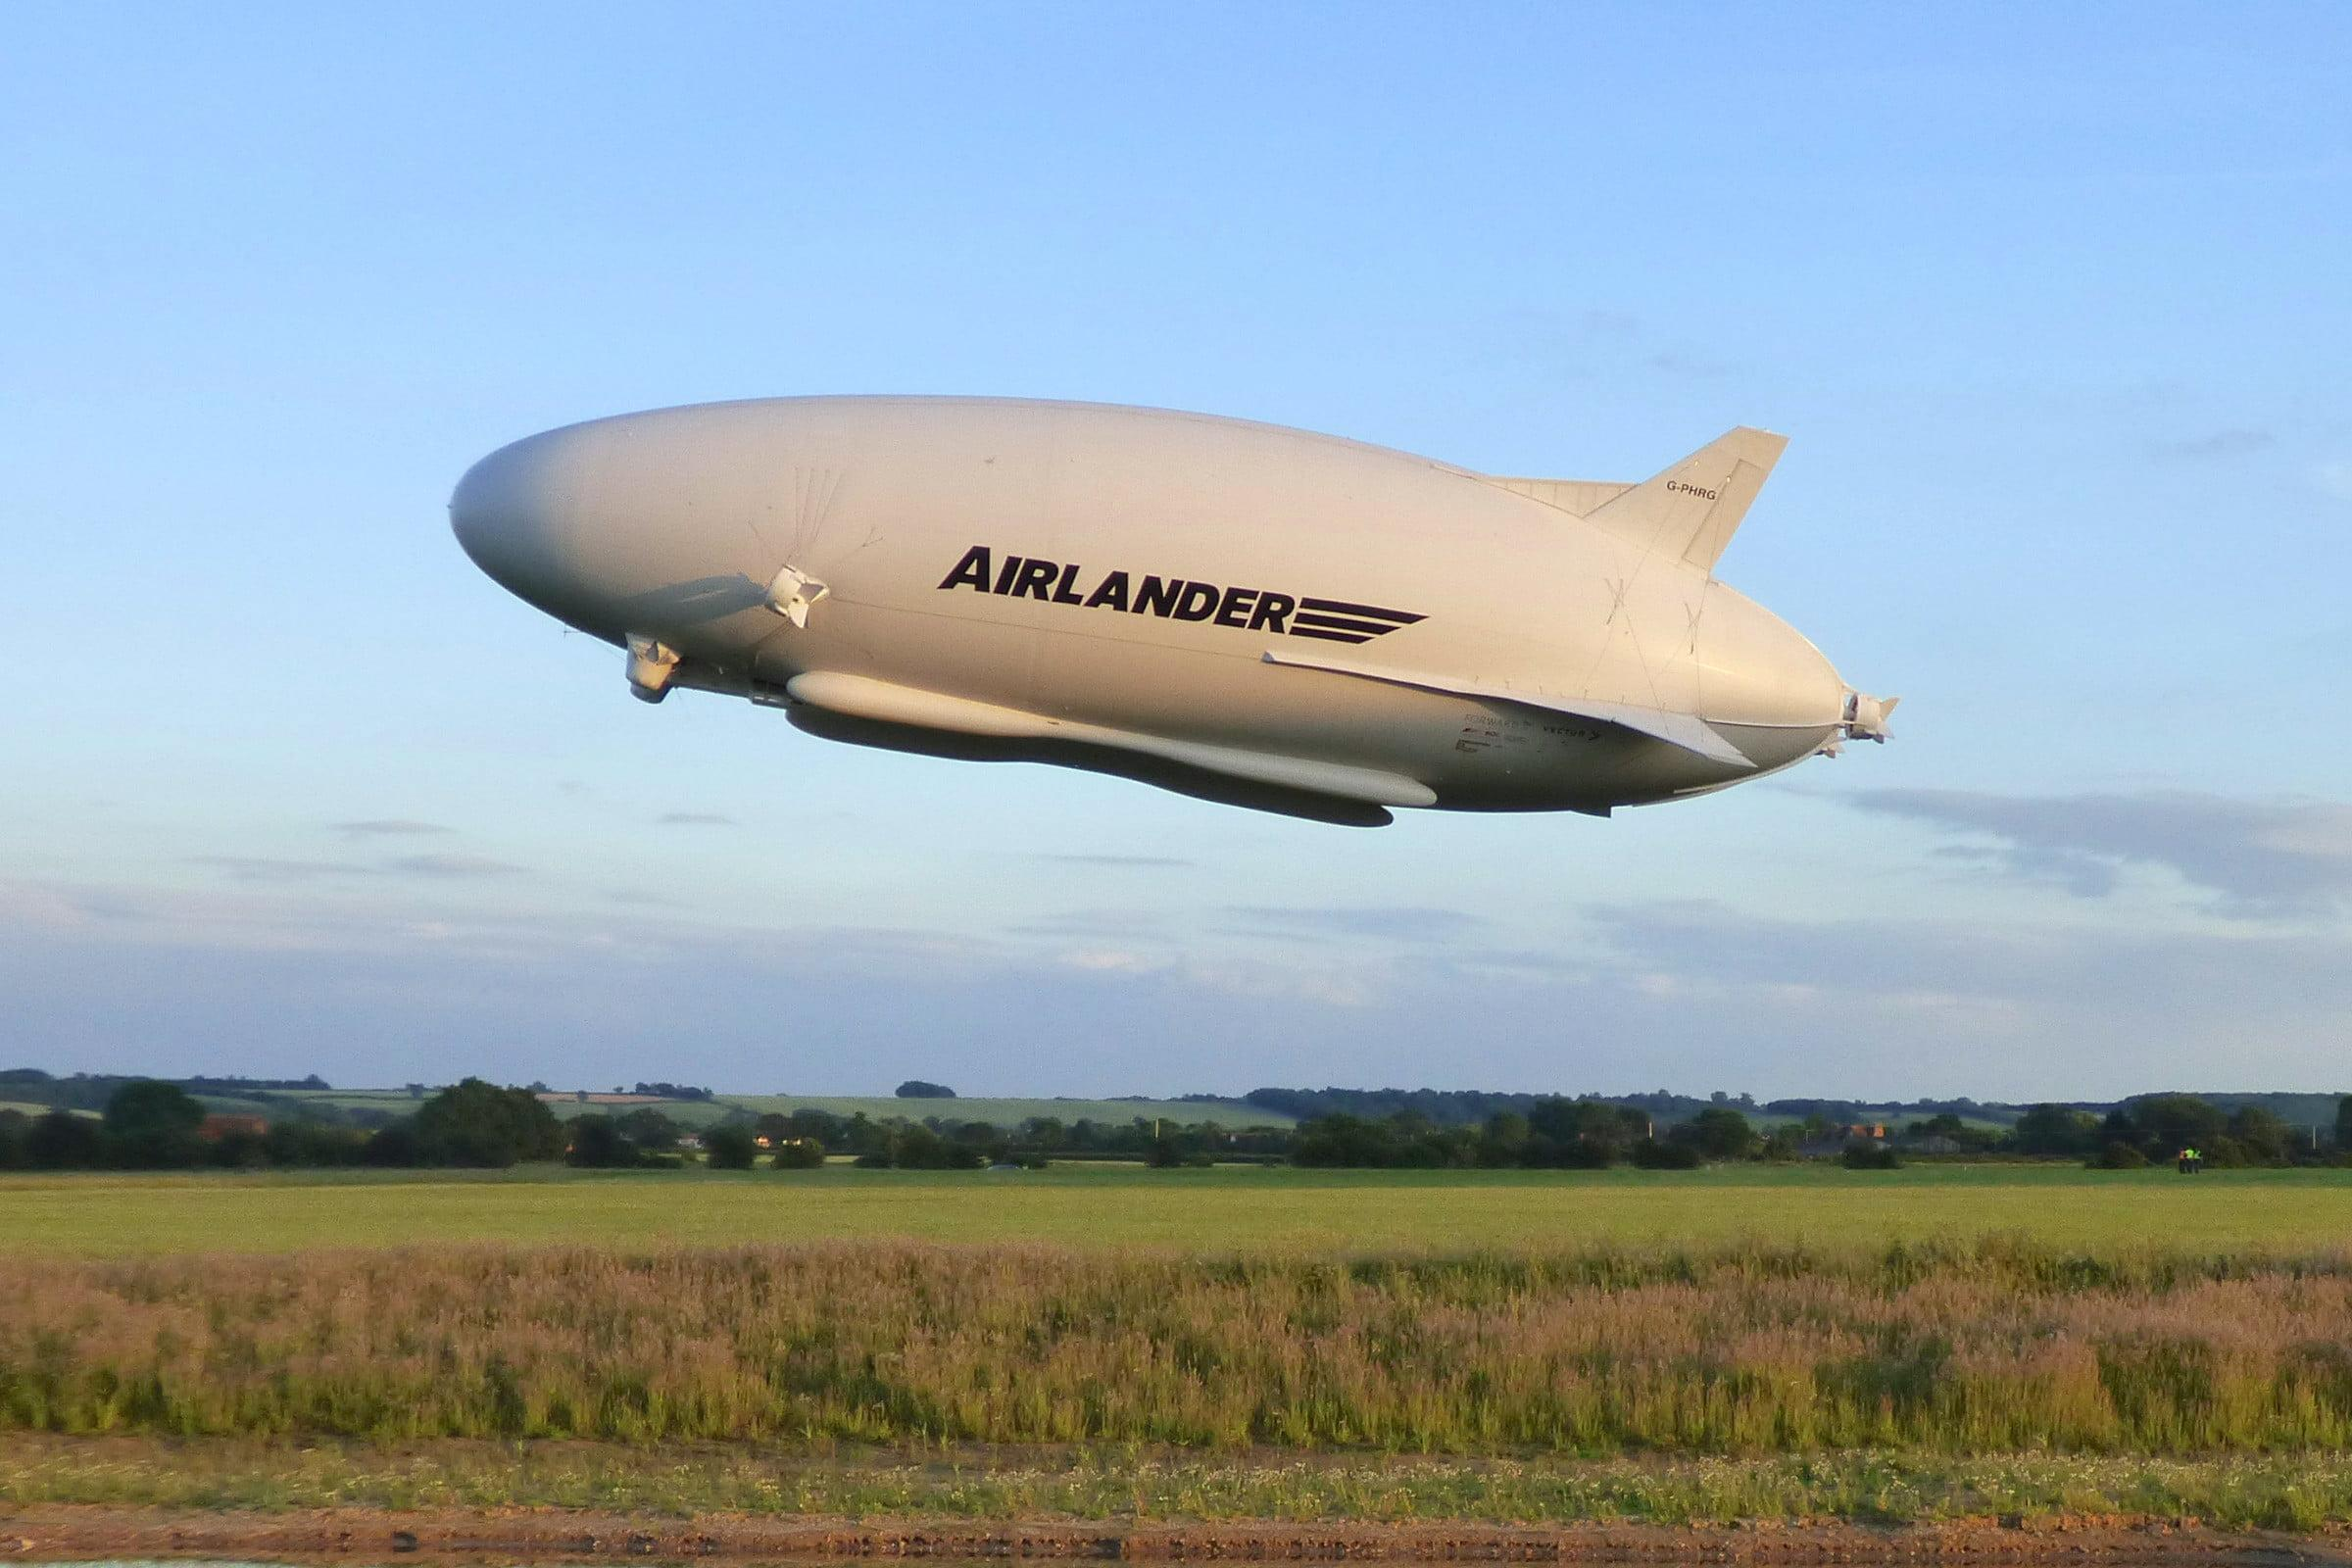 World's largest aircraft tears itself apart